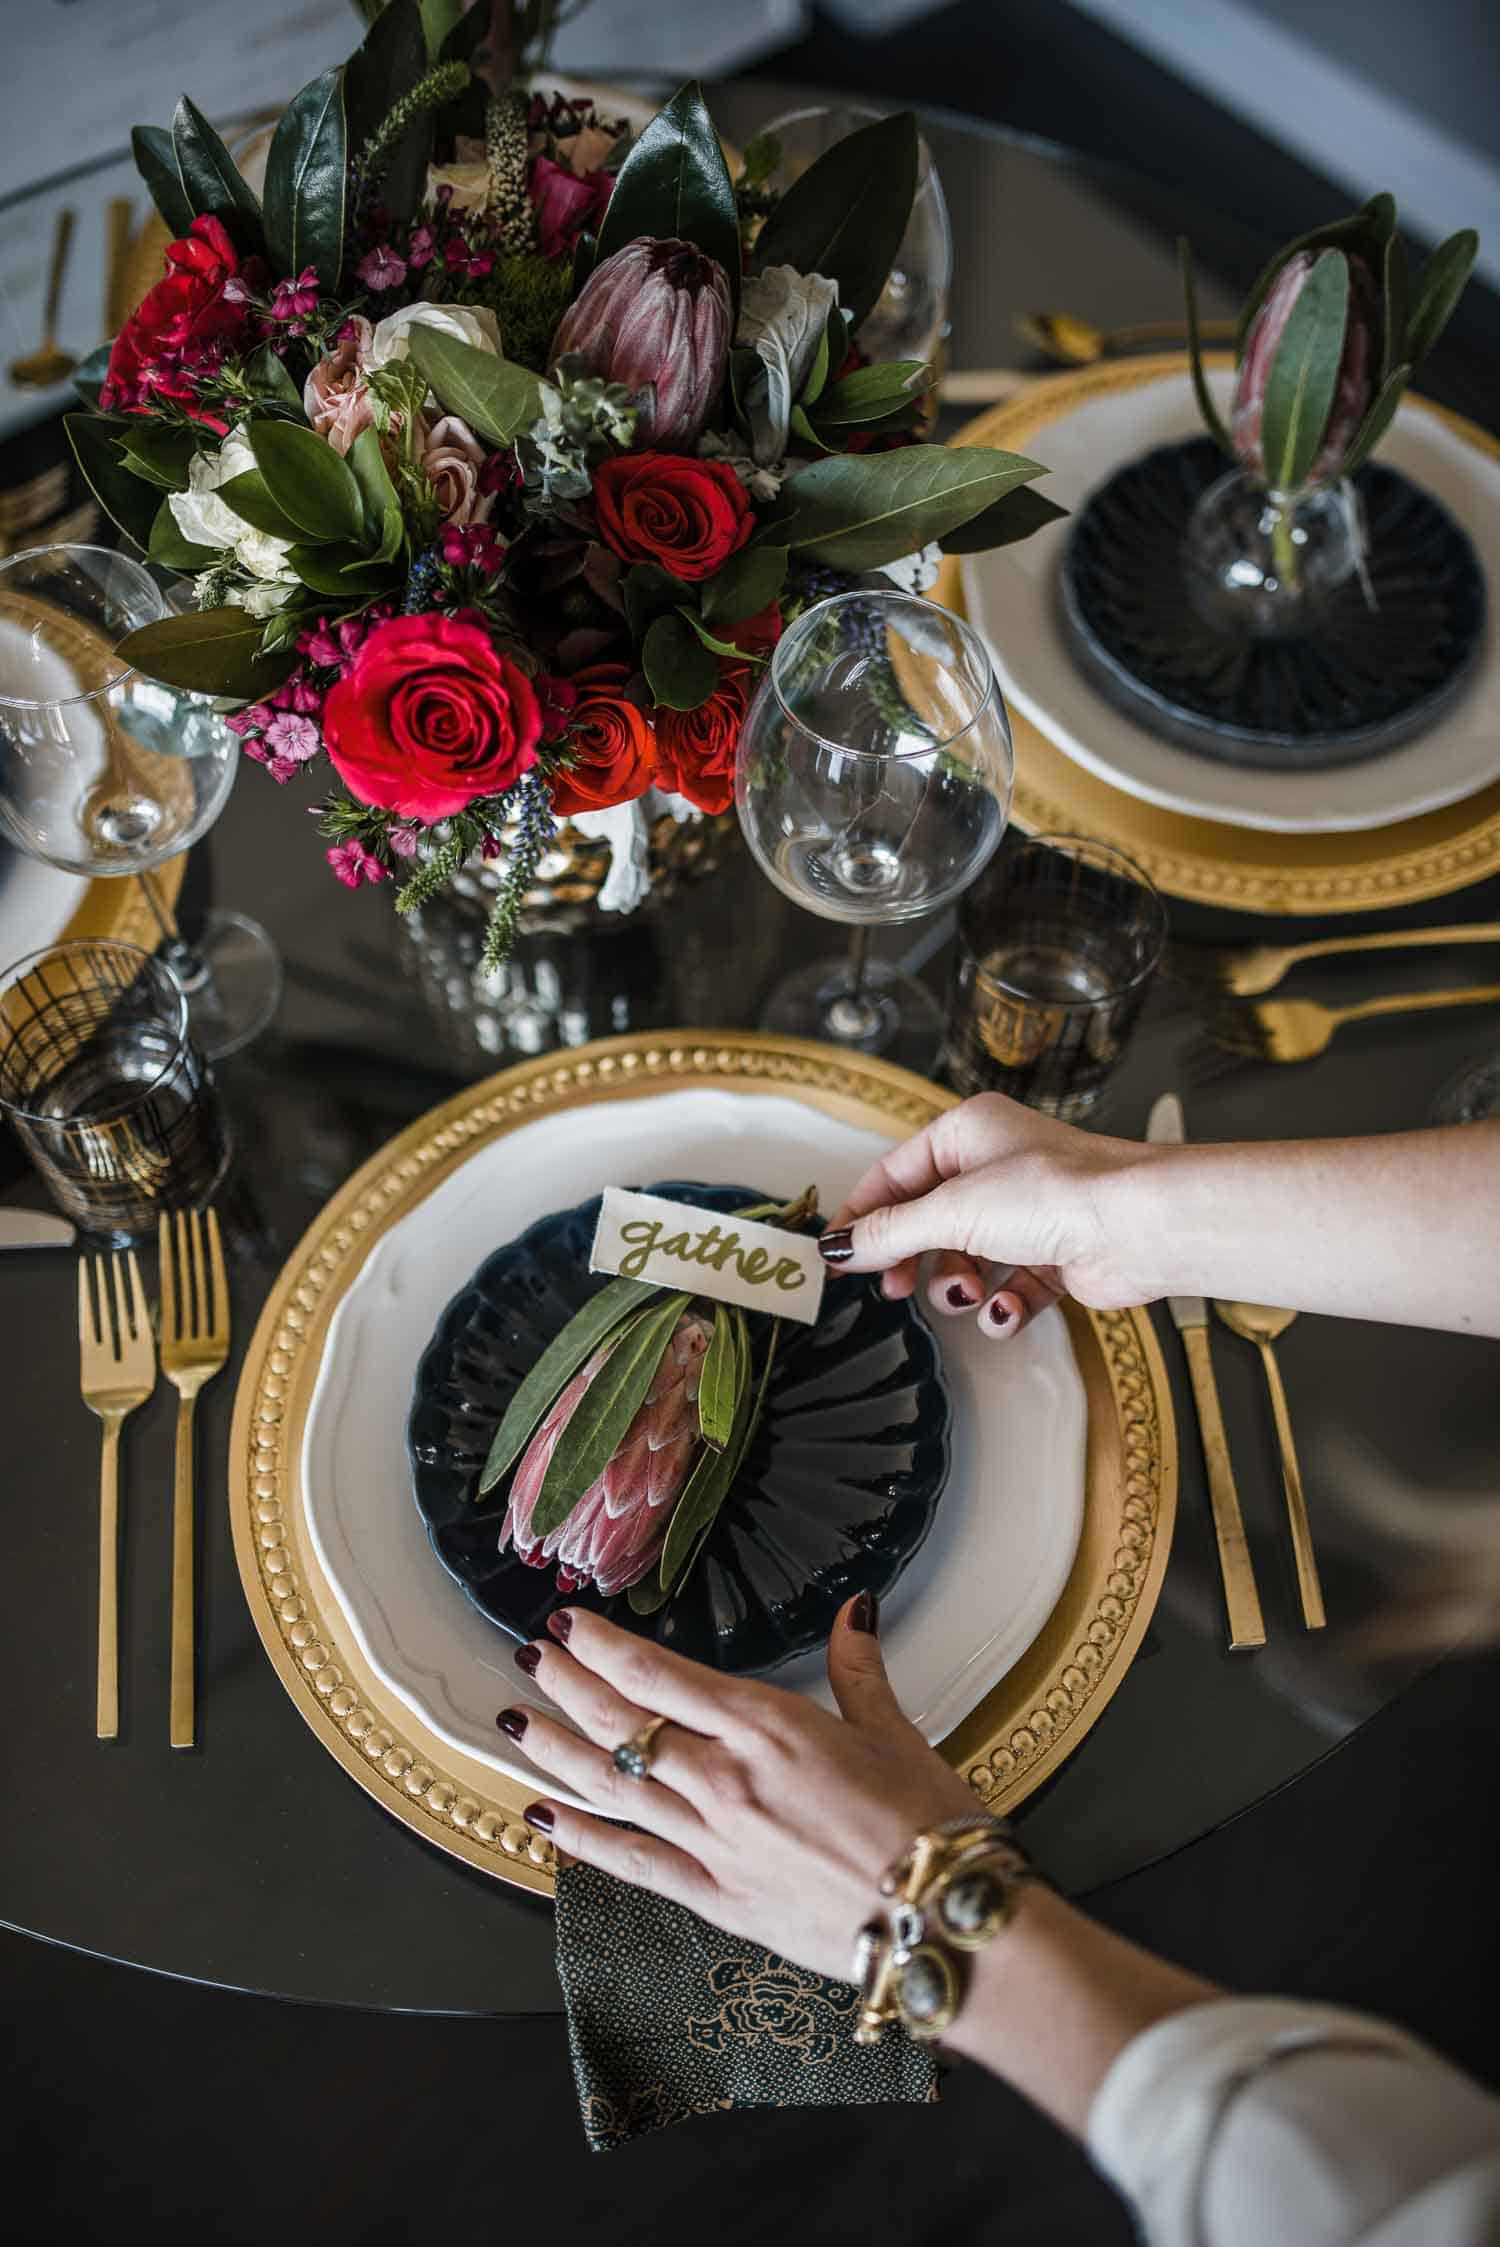 How To Set A Table The Right Way For Guests - My Style Vita